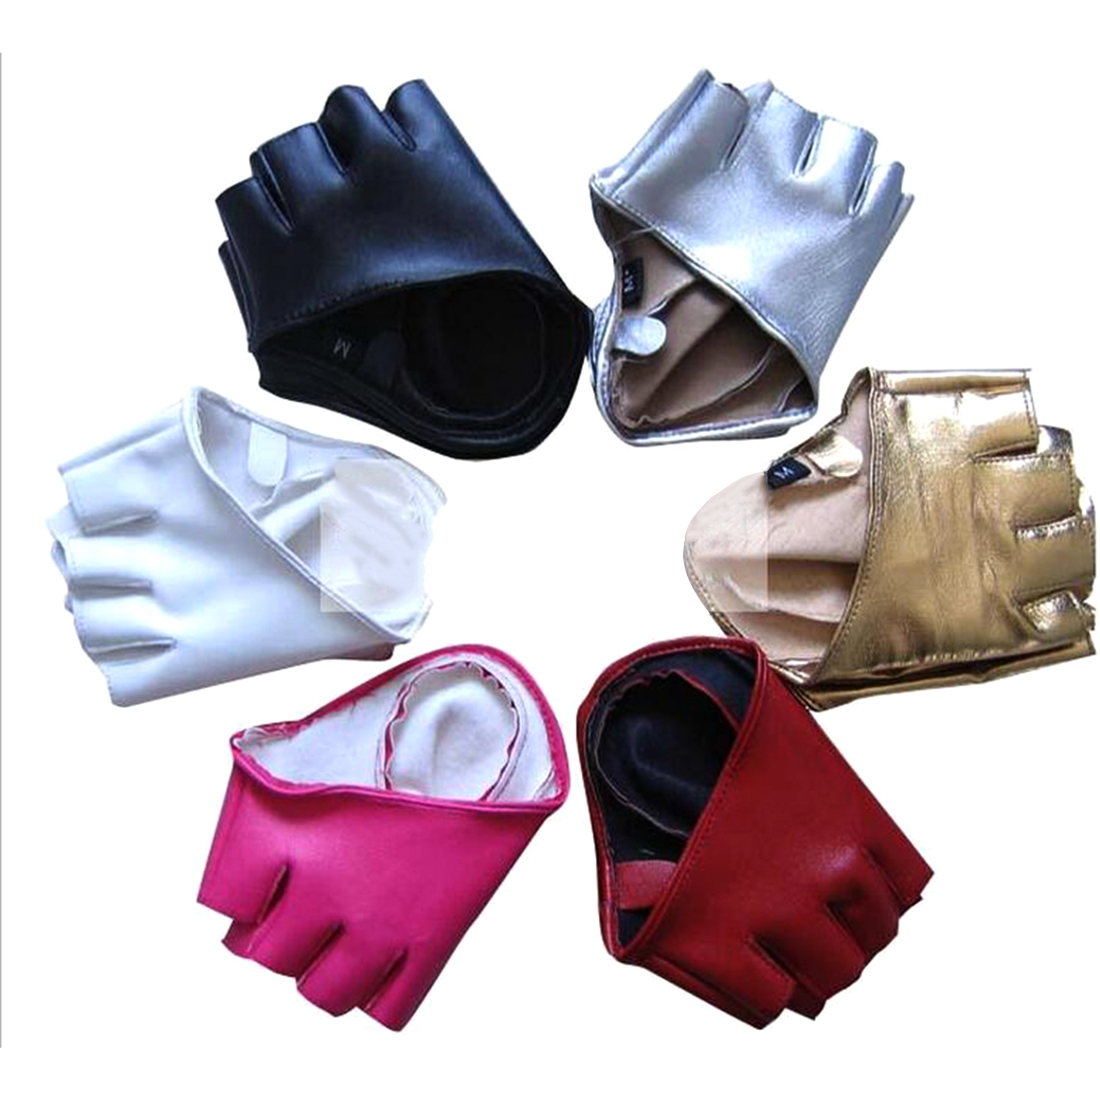 2018 New Fashion Women 39 s Leather Gloves Half Finger Gloves Fingerless Driving Show Jazz Gloves Pole Dance Performance Gloves Hot in Men 39 s Gloves from Apparel Accessories